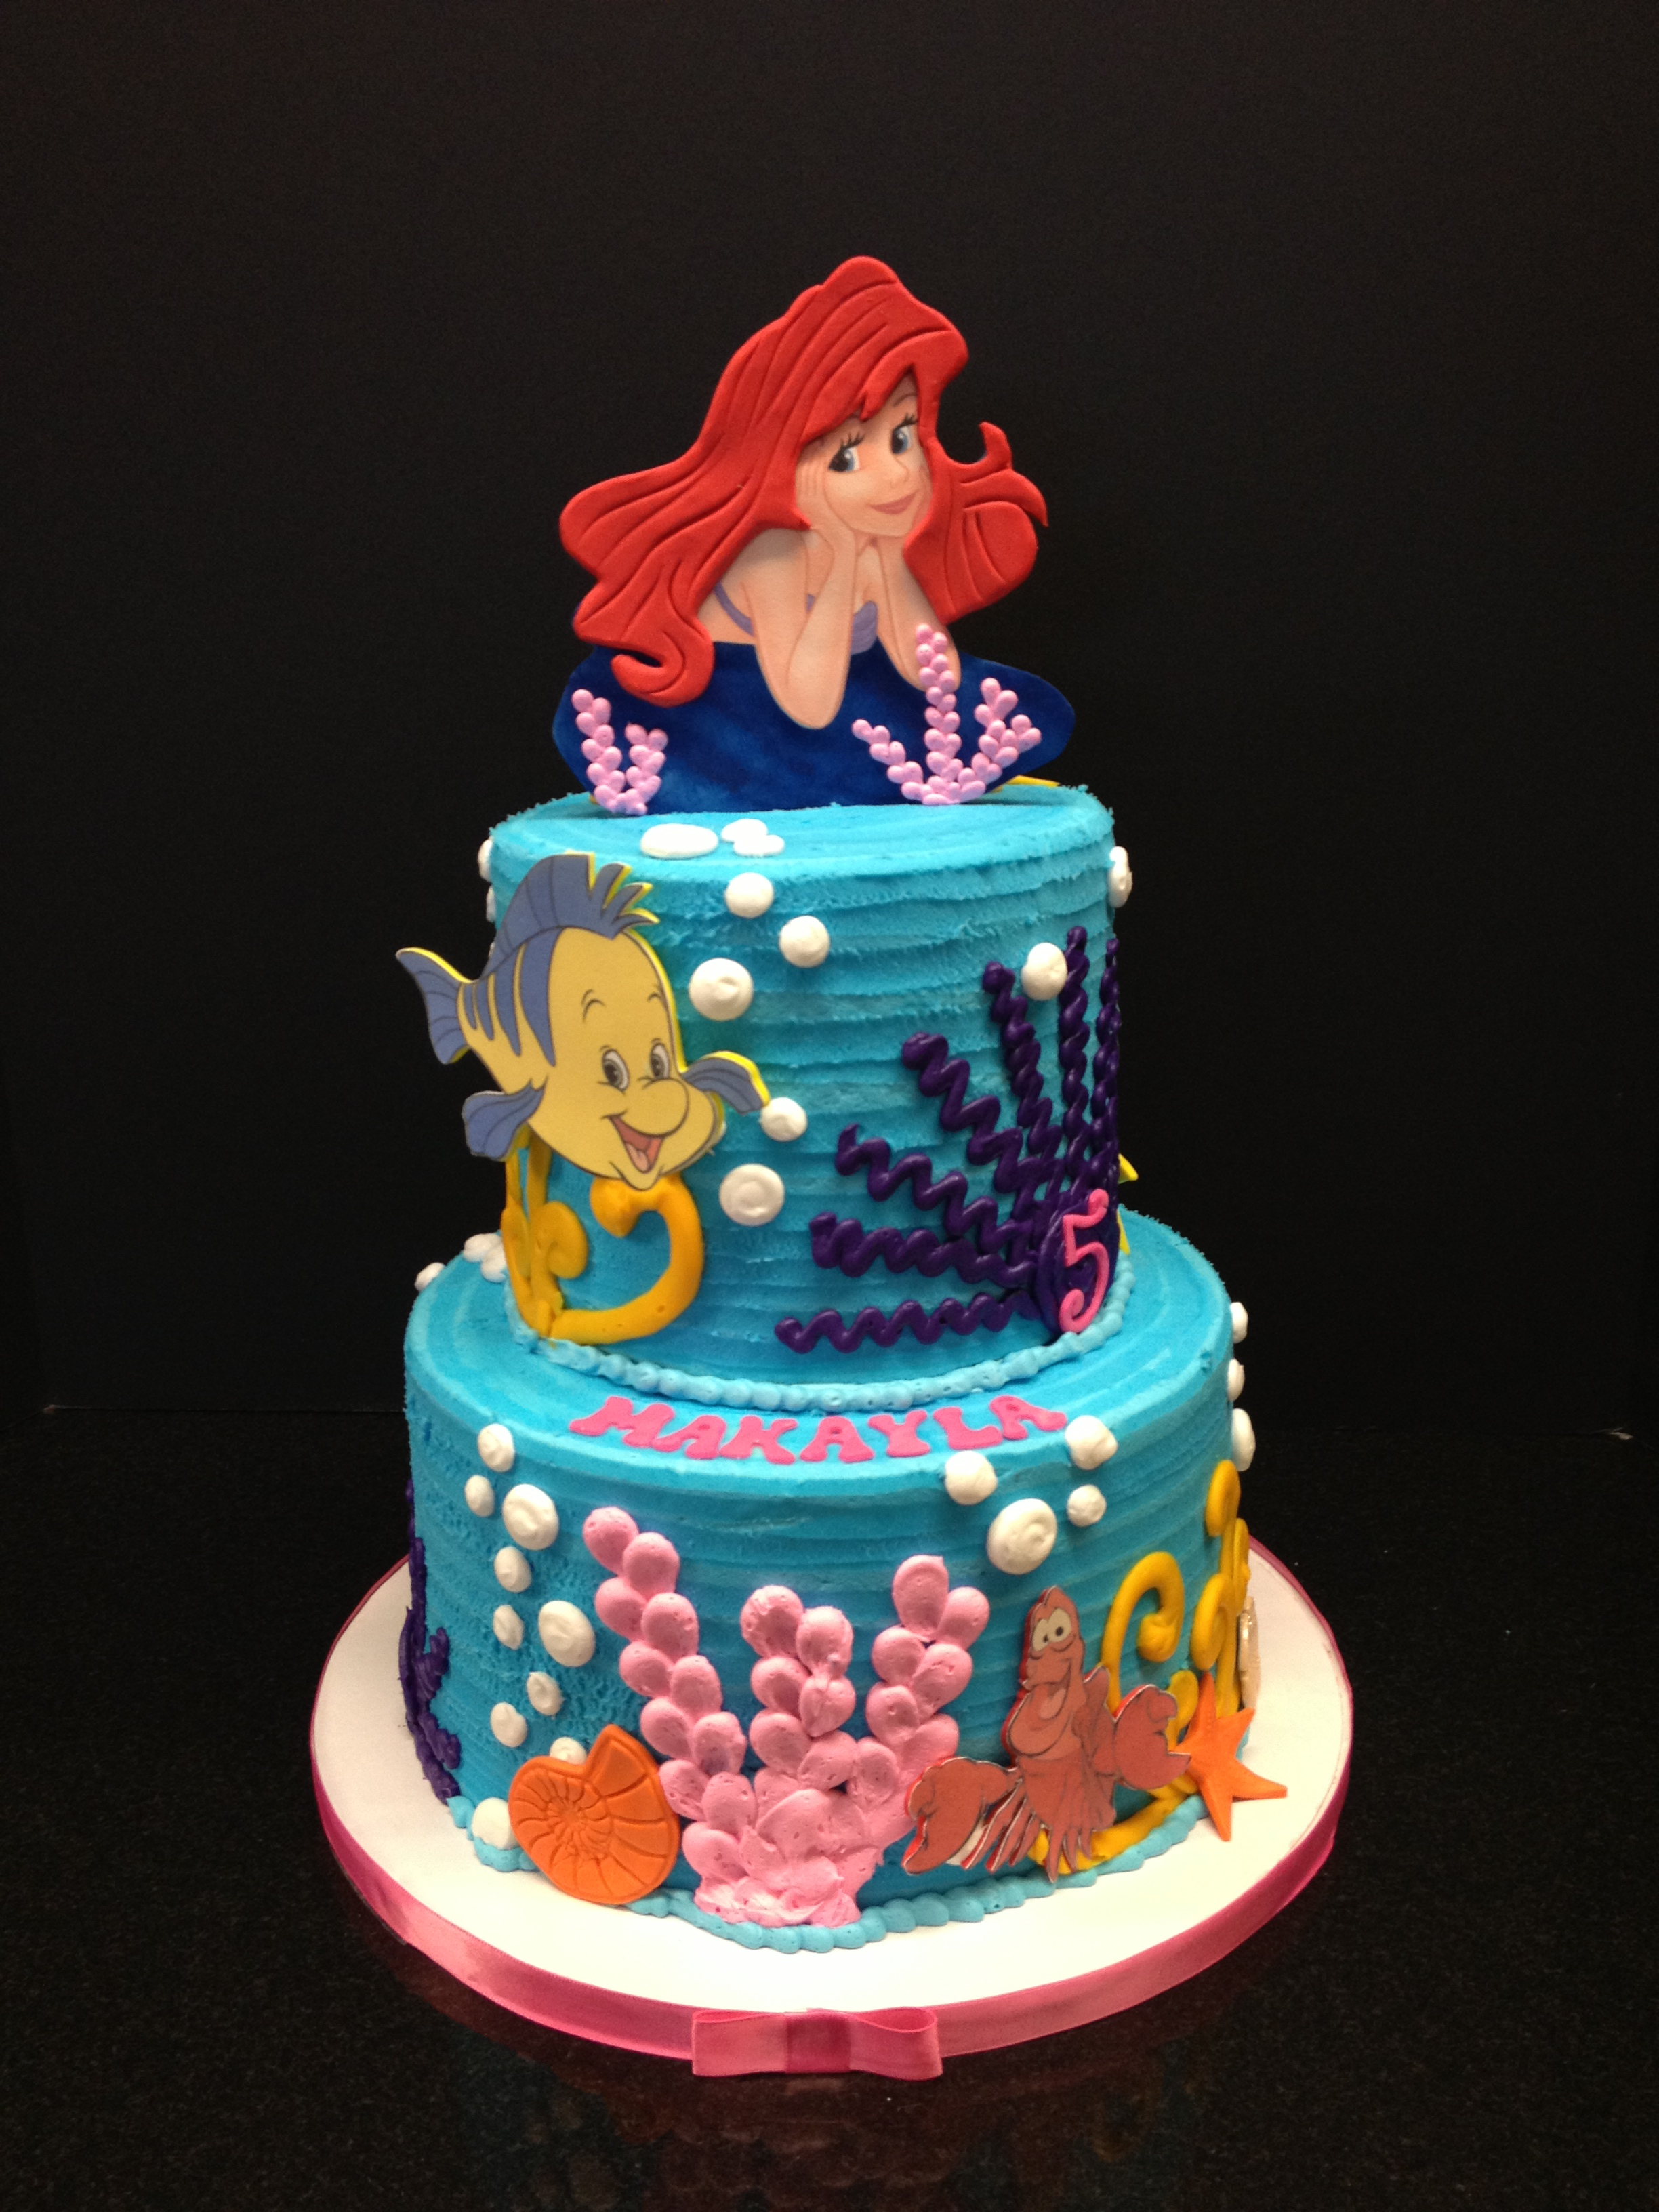 Birthday Cake Ideas Mermaid : little mermaid birthday cake Brenham Olde Towne Bakery